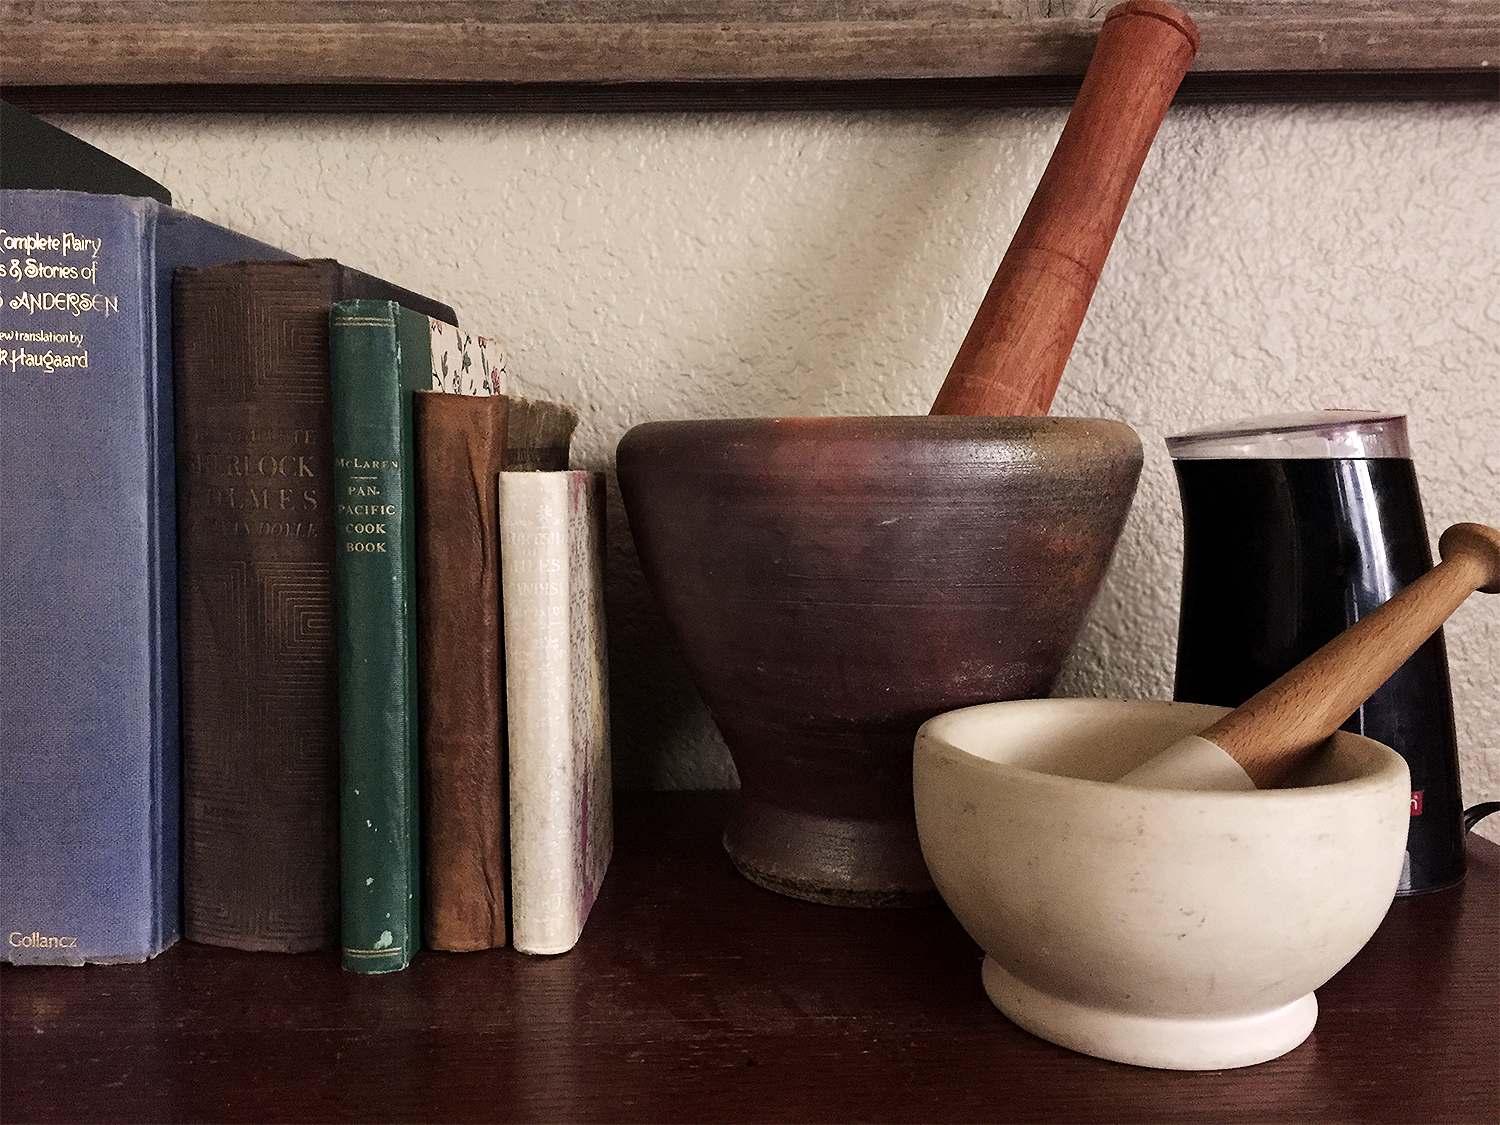 Mortar and pestles are good for rough grinds, while an electric spice grinder is good for a fine powder.